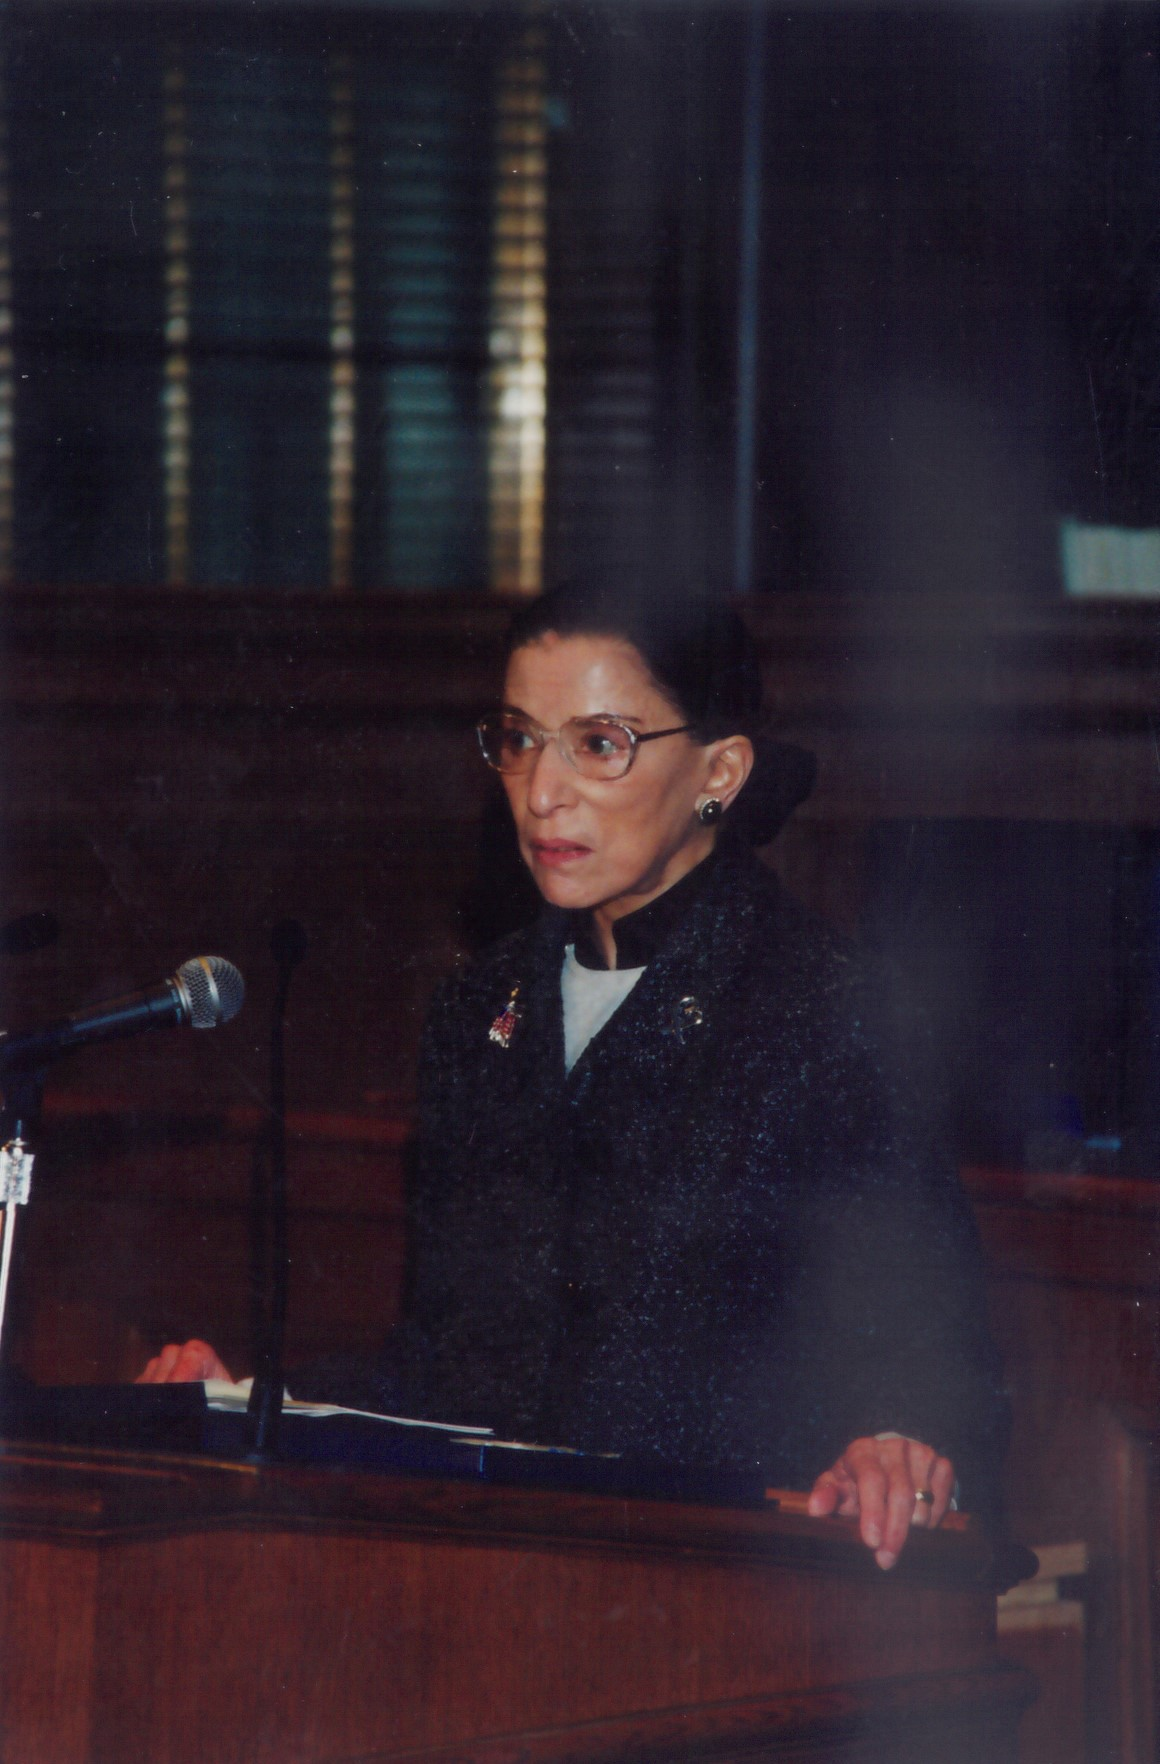 Ruth Bader Ginsberg speaks at The Legal Aid Society